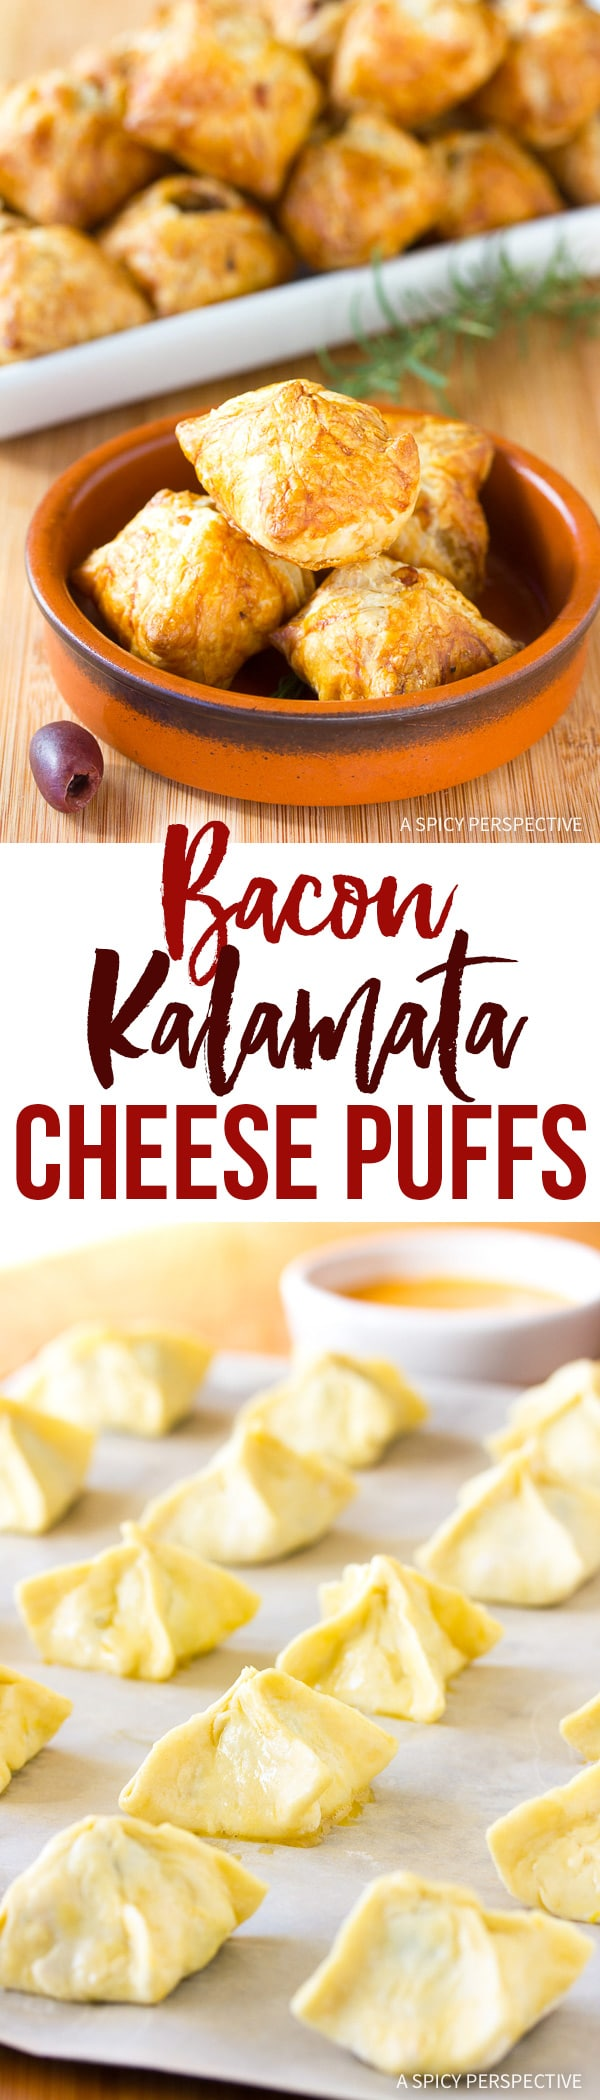 Amazing Bacon Kalamata Cheese Puffs Recipe